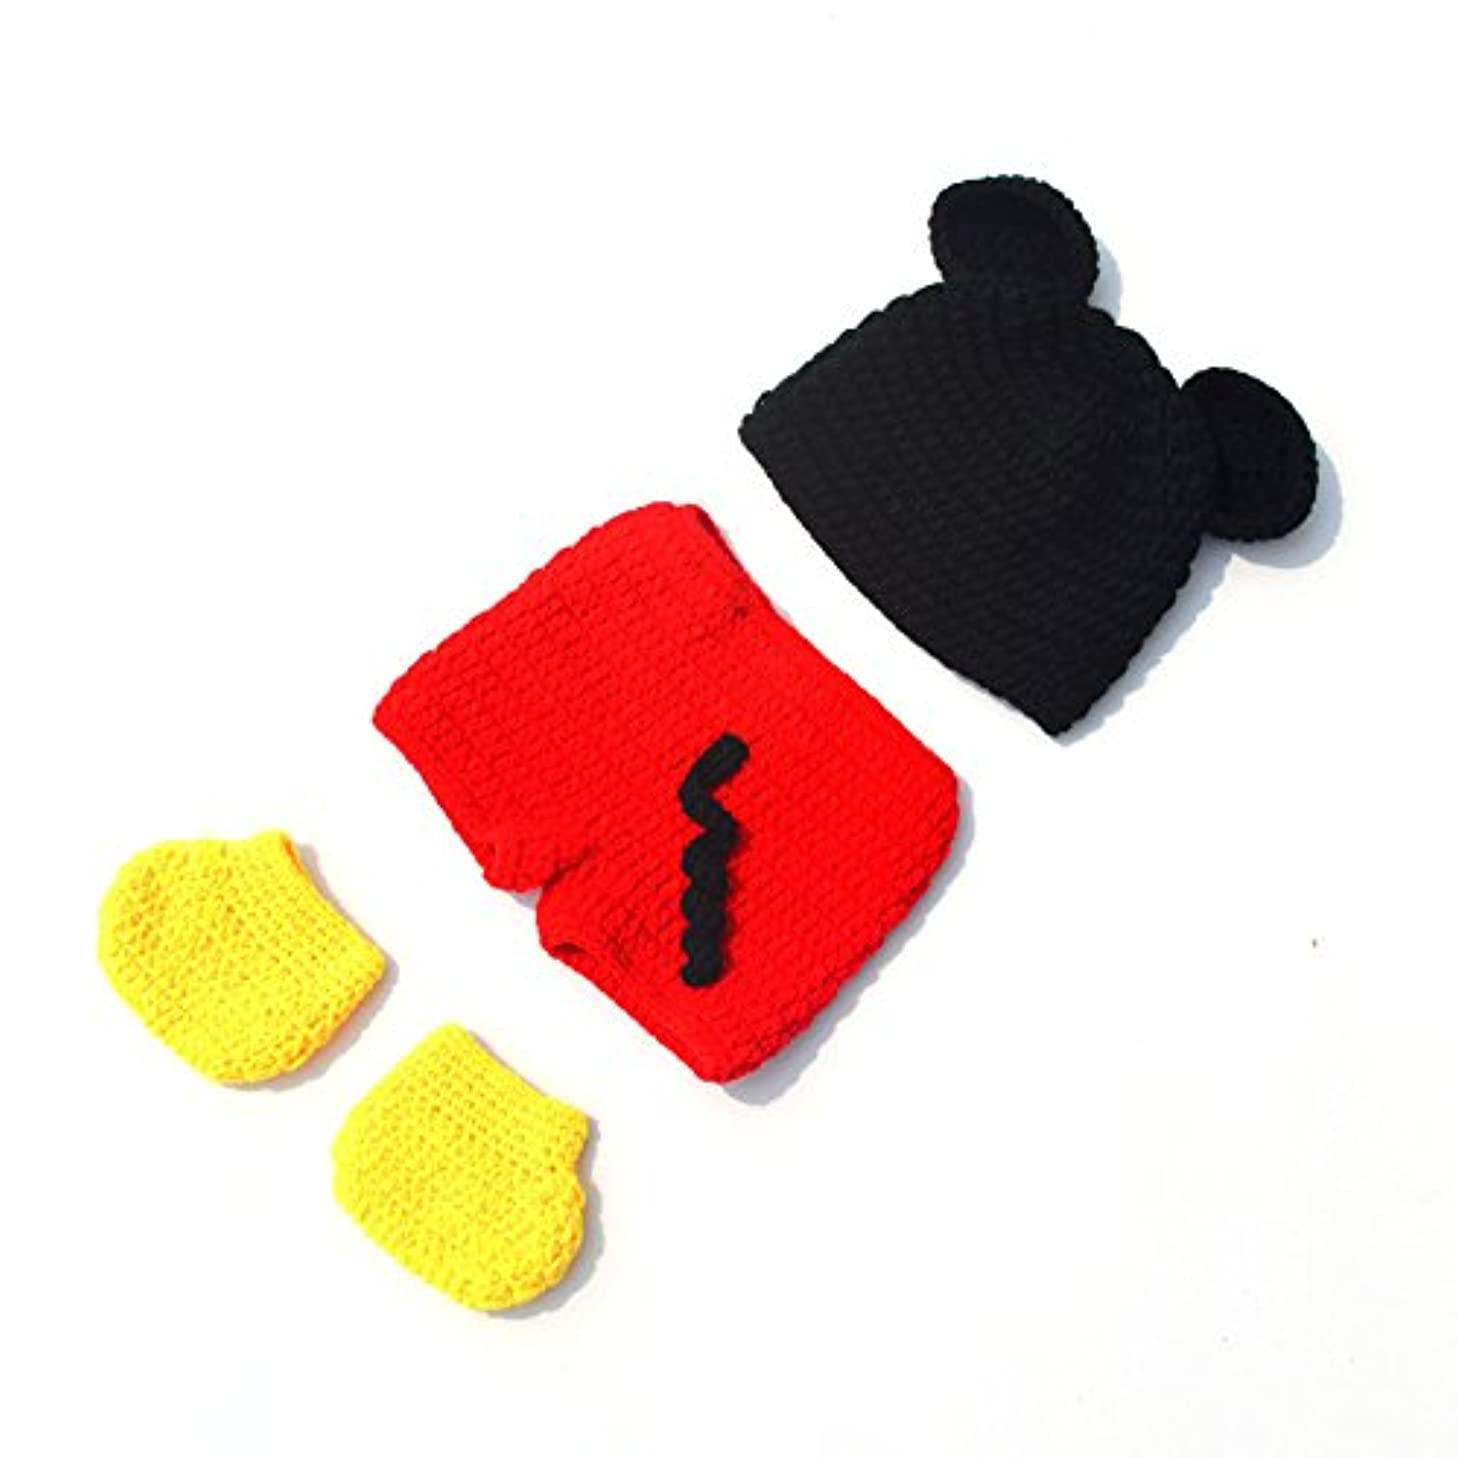 ENCOCO Newborn Baby Photo Photography Props Handmade Crochet Clothes Costume Cute Black and Red Hat Pants Shoes Set for Baby Boy Girl